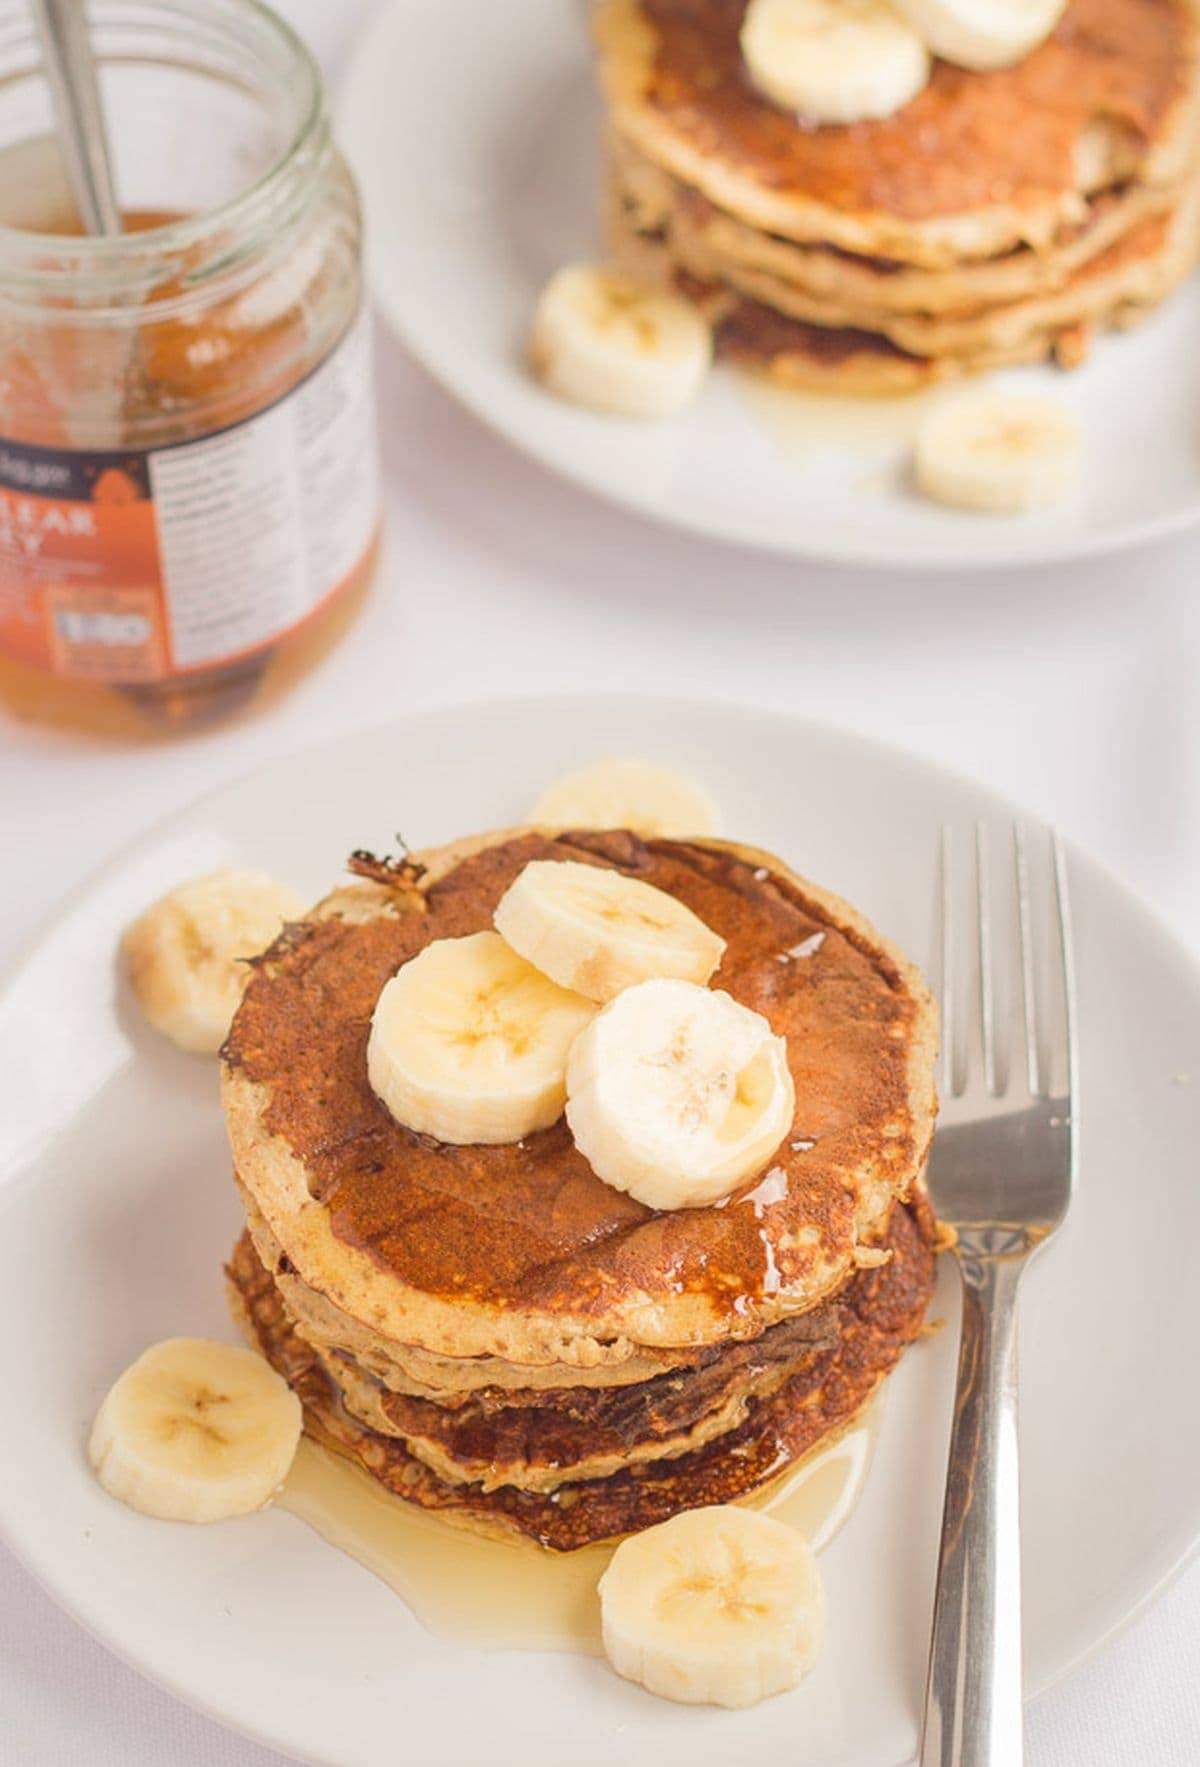 Two plates of banana oat pancakes topped with honey and sliced bananas. A jar of honey with a spoon in between.